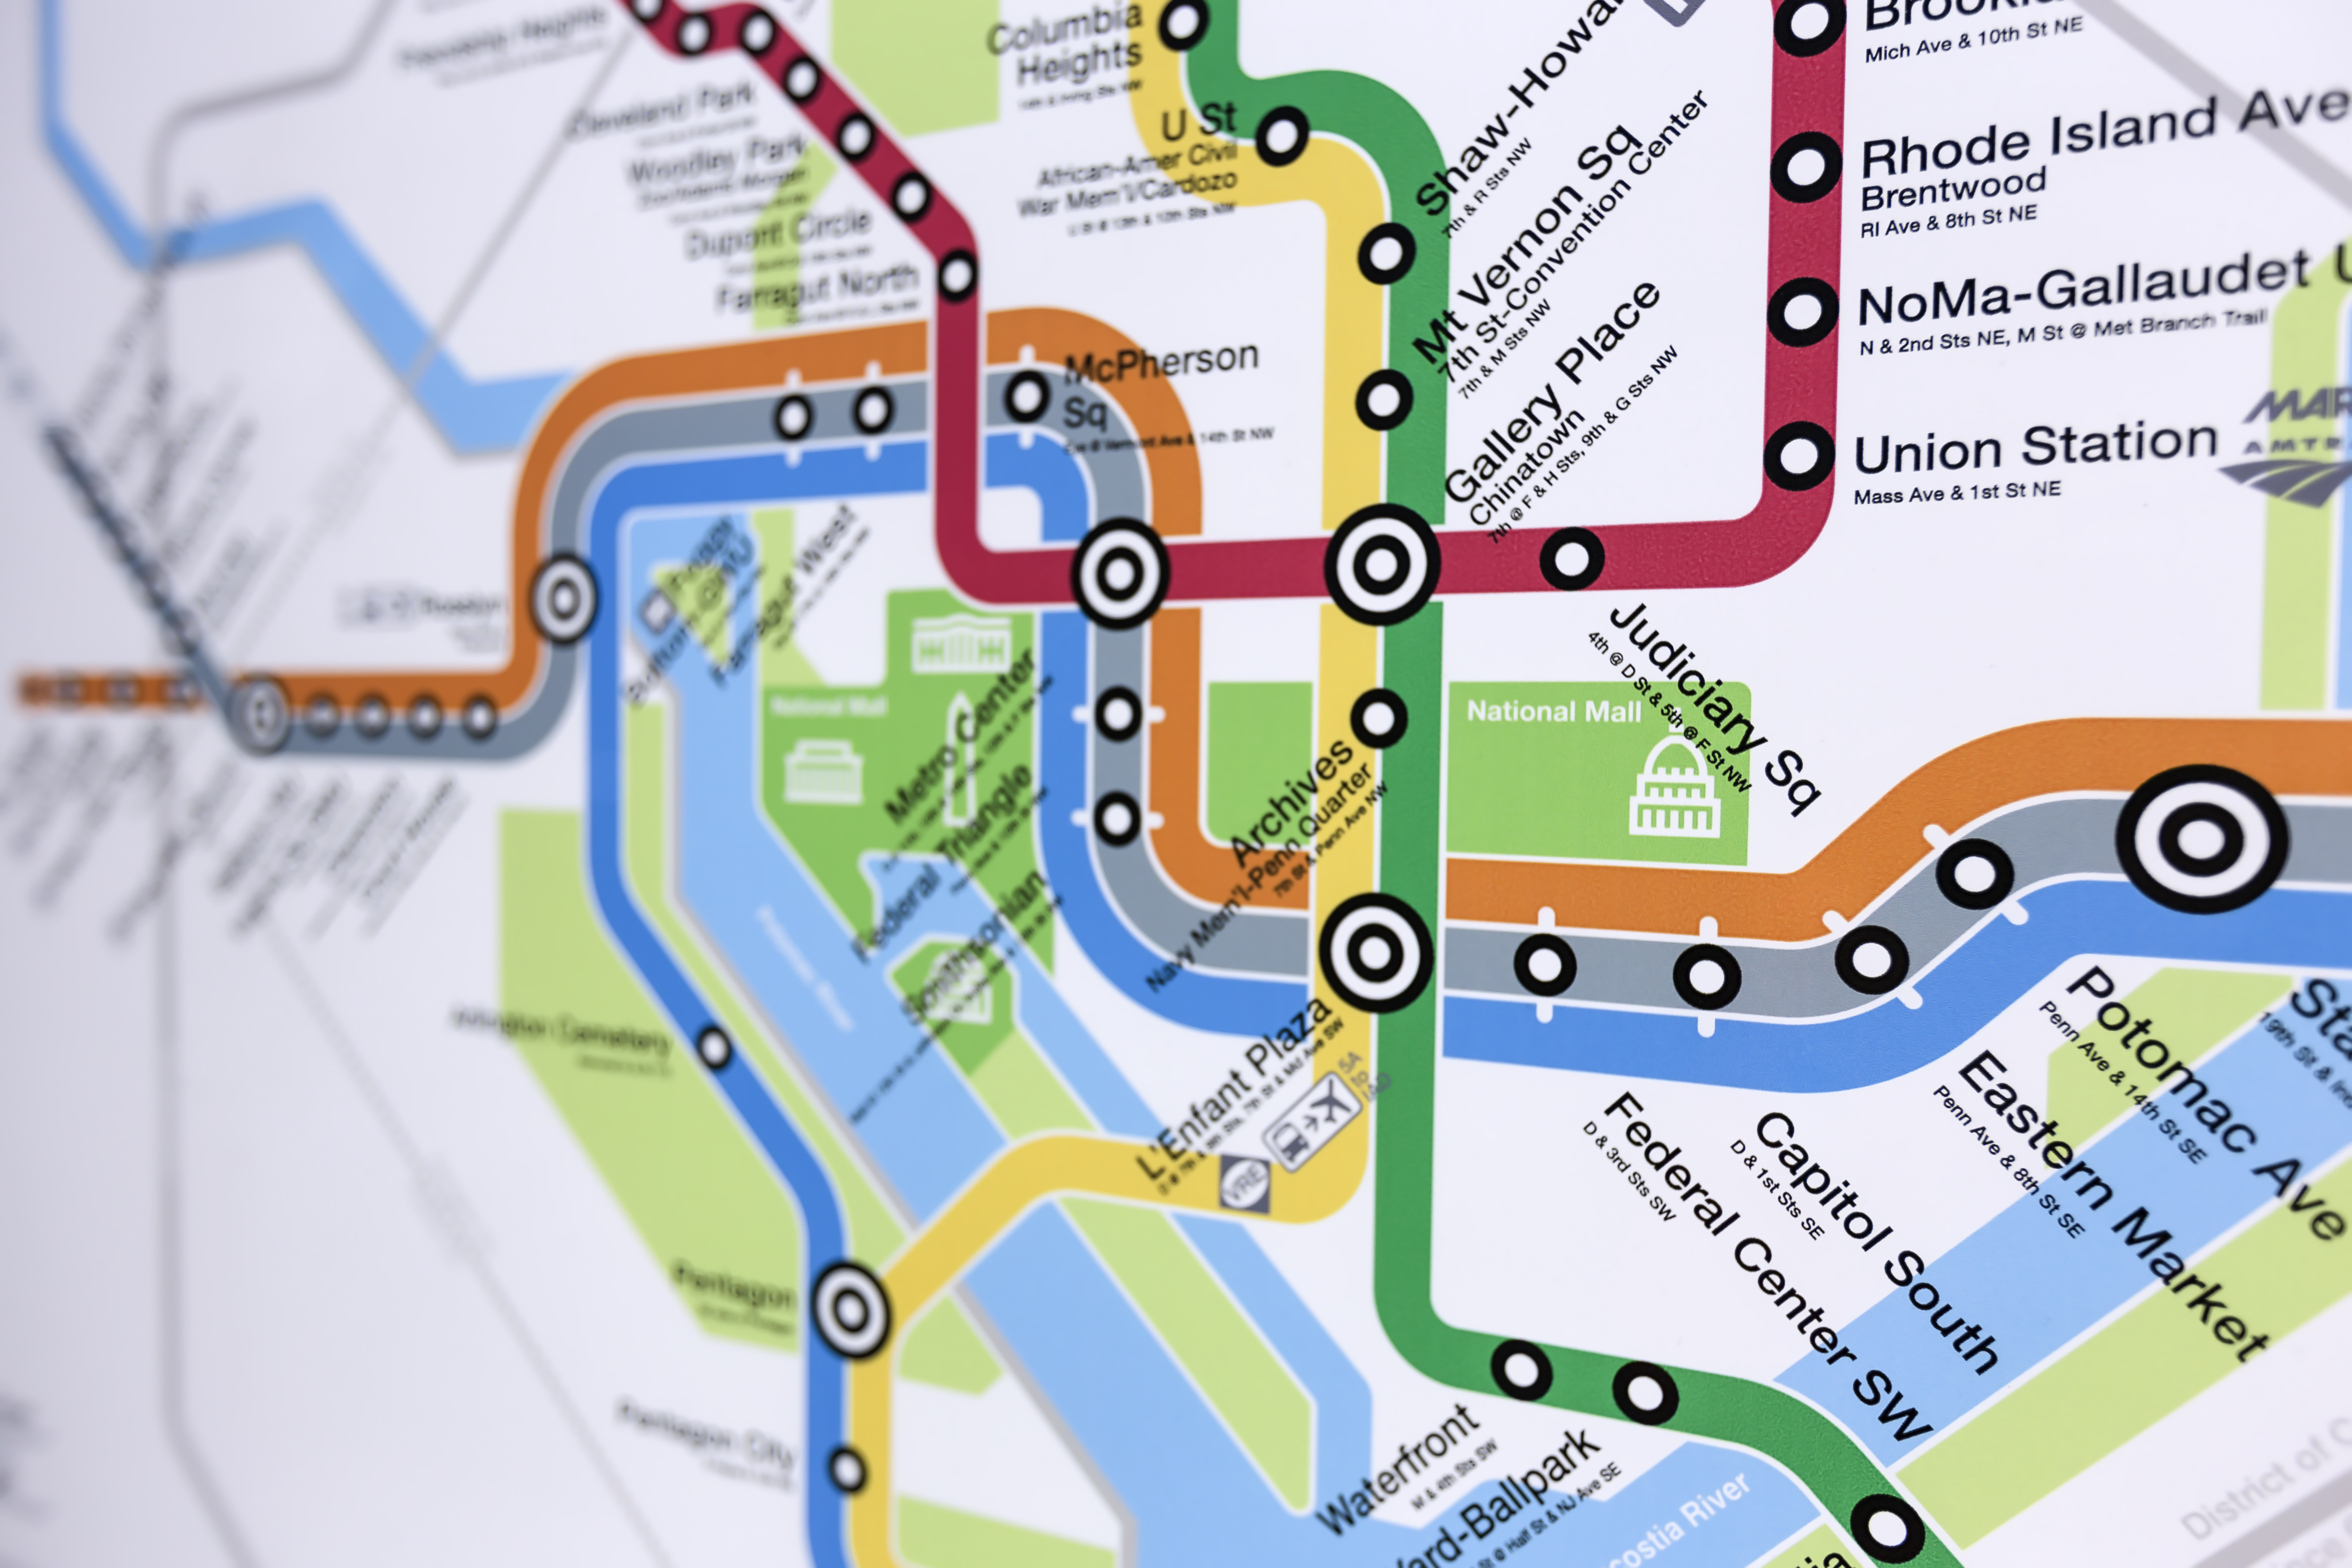 A map showing six different lines in a subway system. Each of the lines is a different color: Red, Blue, Orange, Yellow, Silver, and Green.